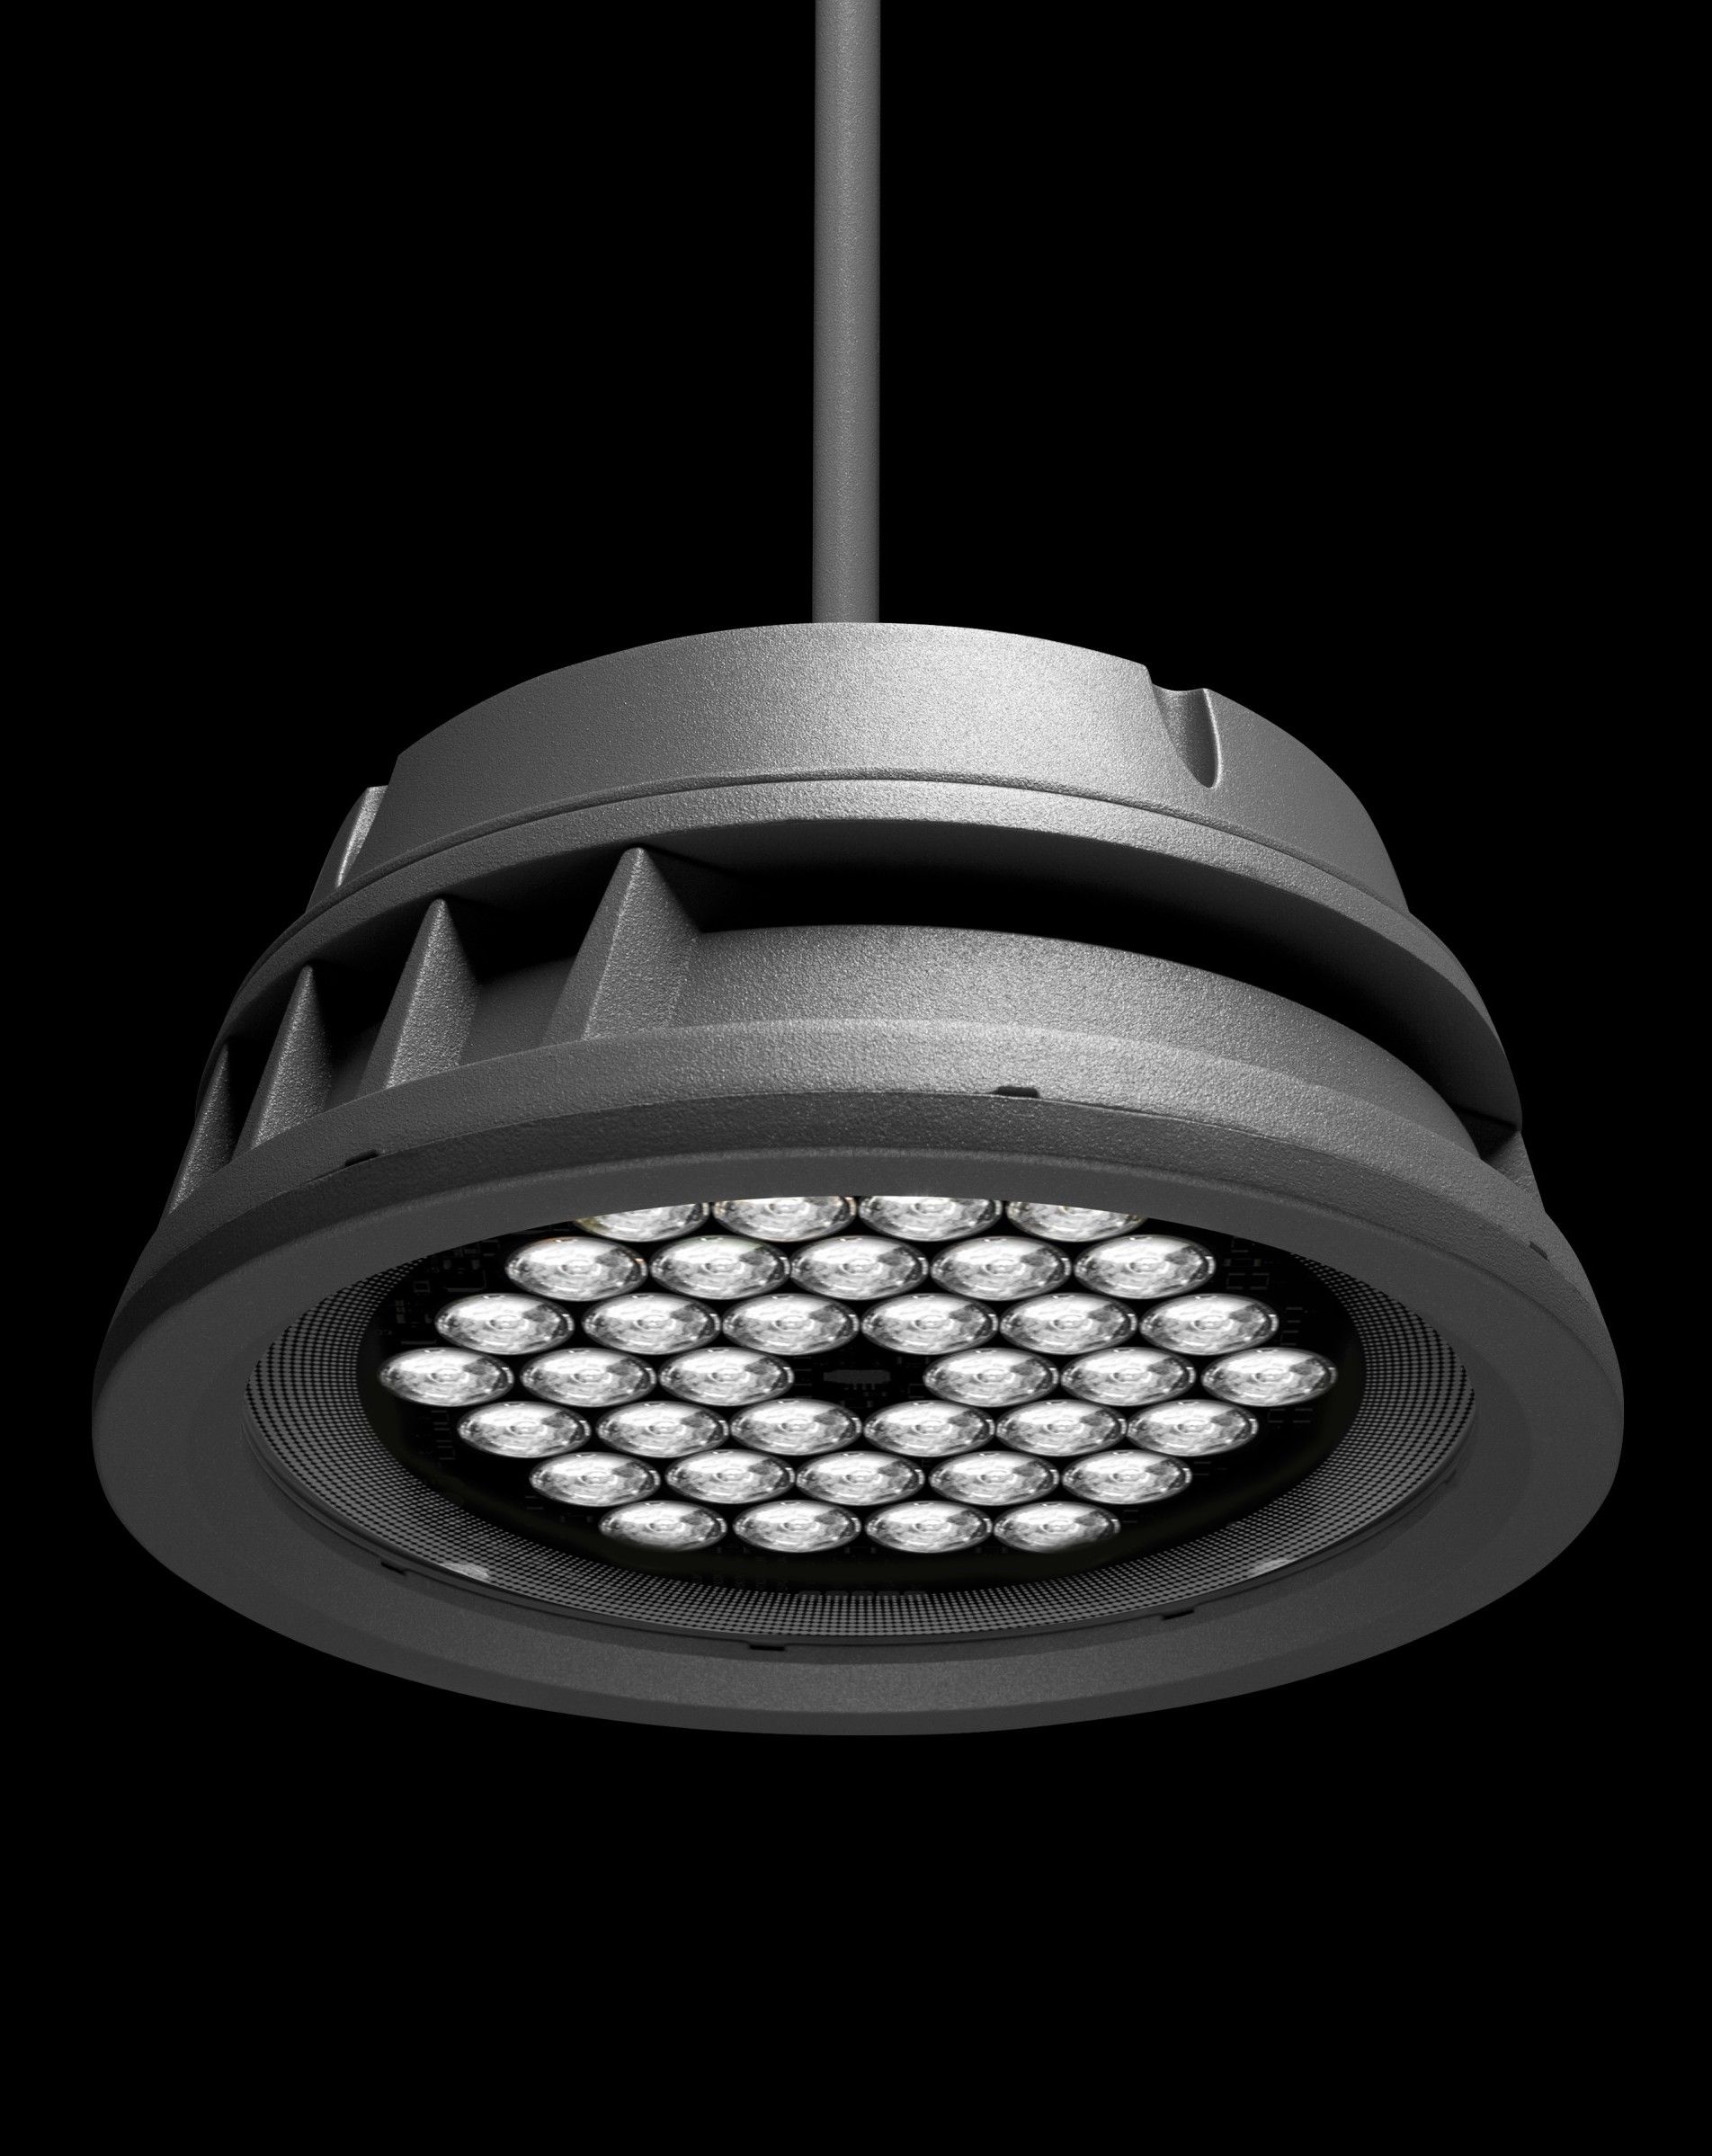 Lumenbeam Large Pendant Ip66 Rated Suspended Luminaire For